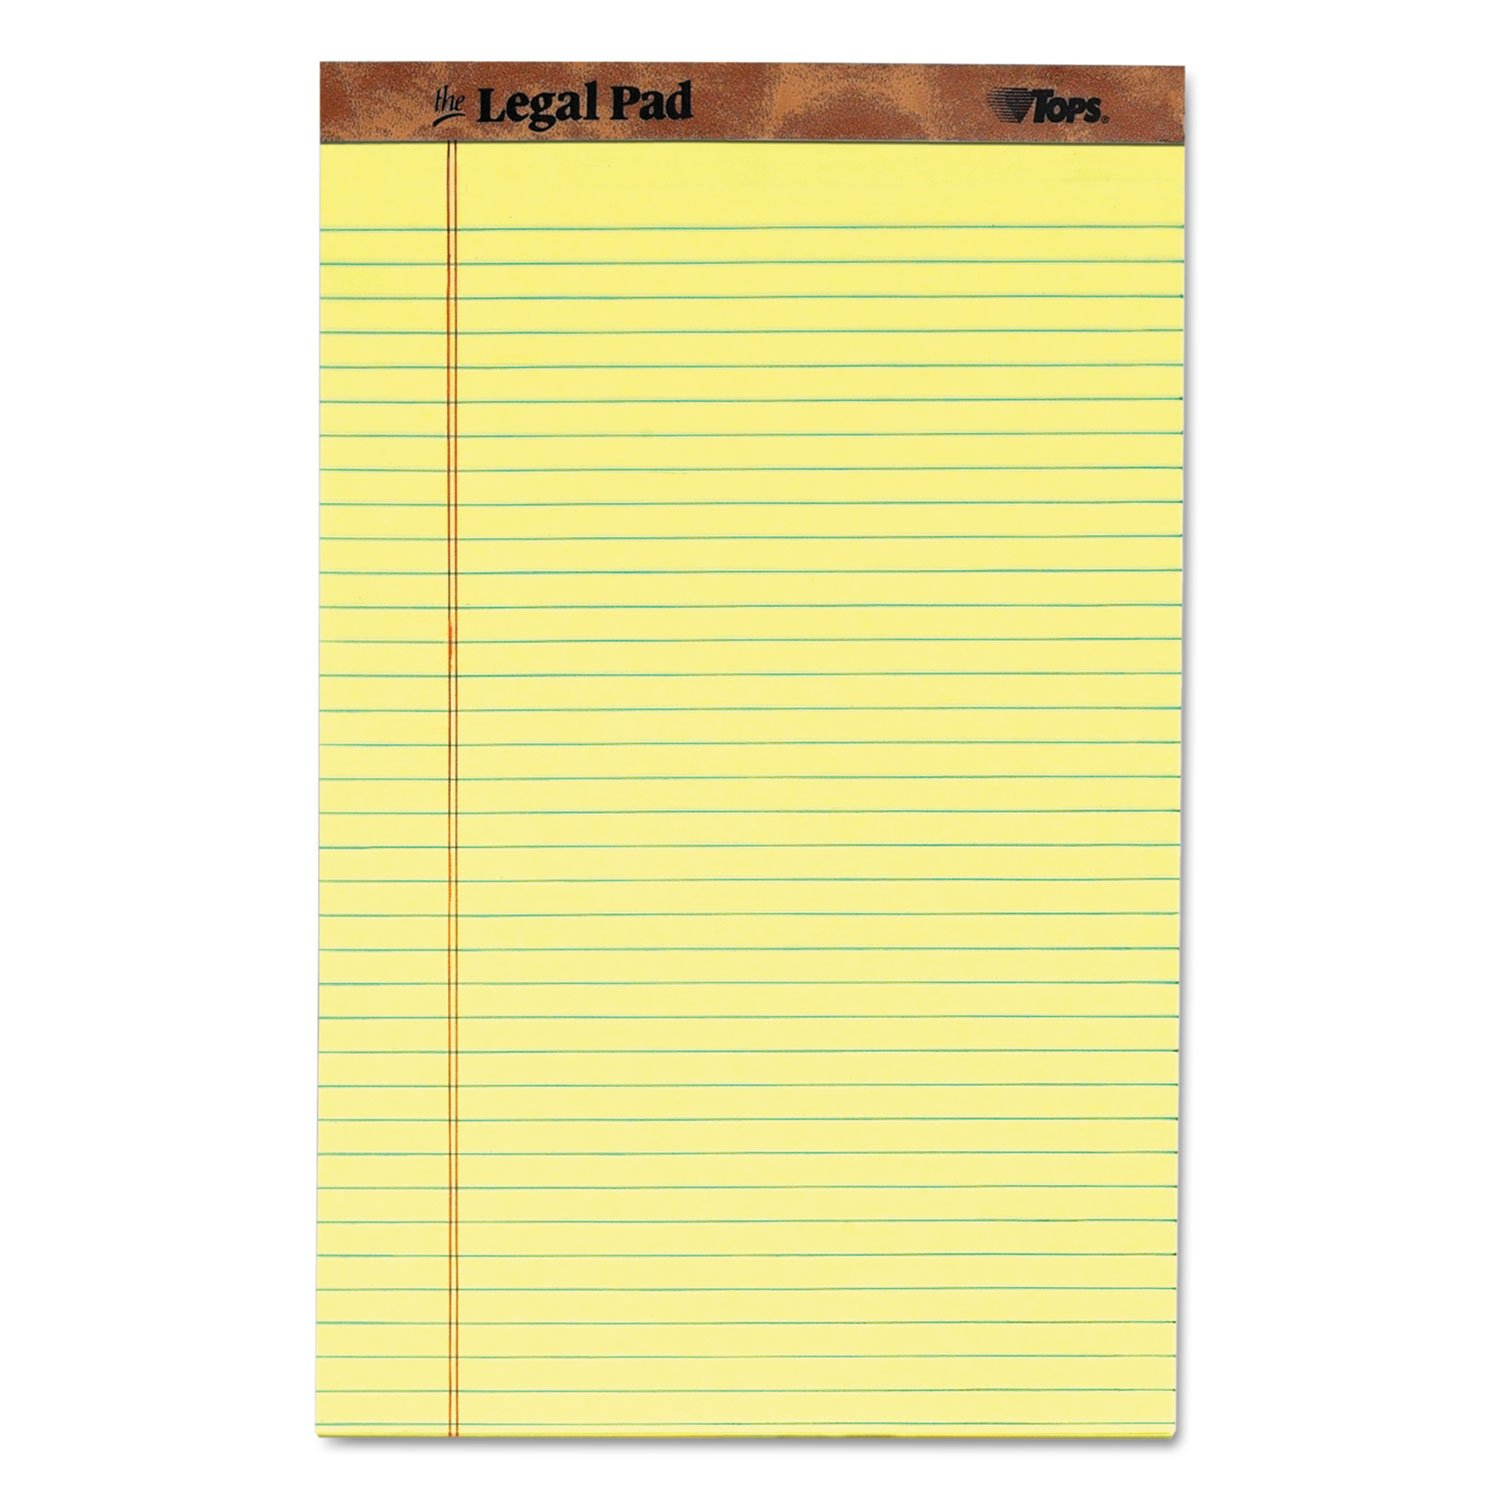 TOPS 7572 The Legal Pad Ruled Perf Pad, Legal/Wide, 8 1/2 x 14, Canary, 50 Sheets, Dozen